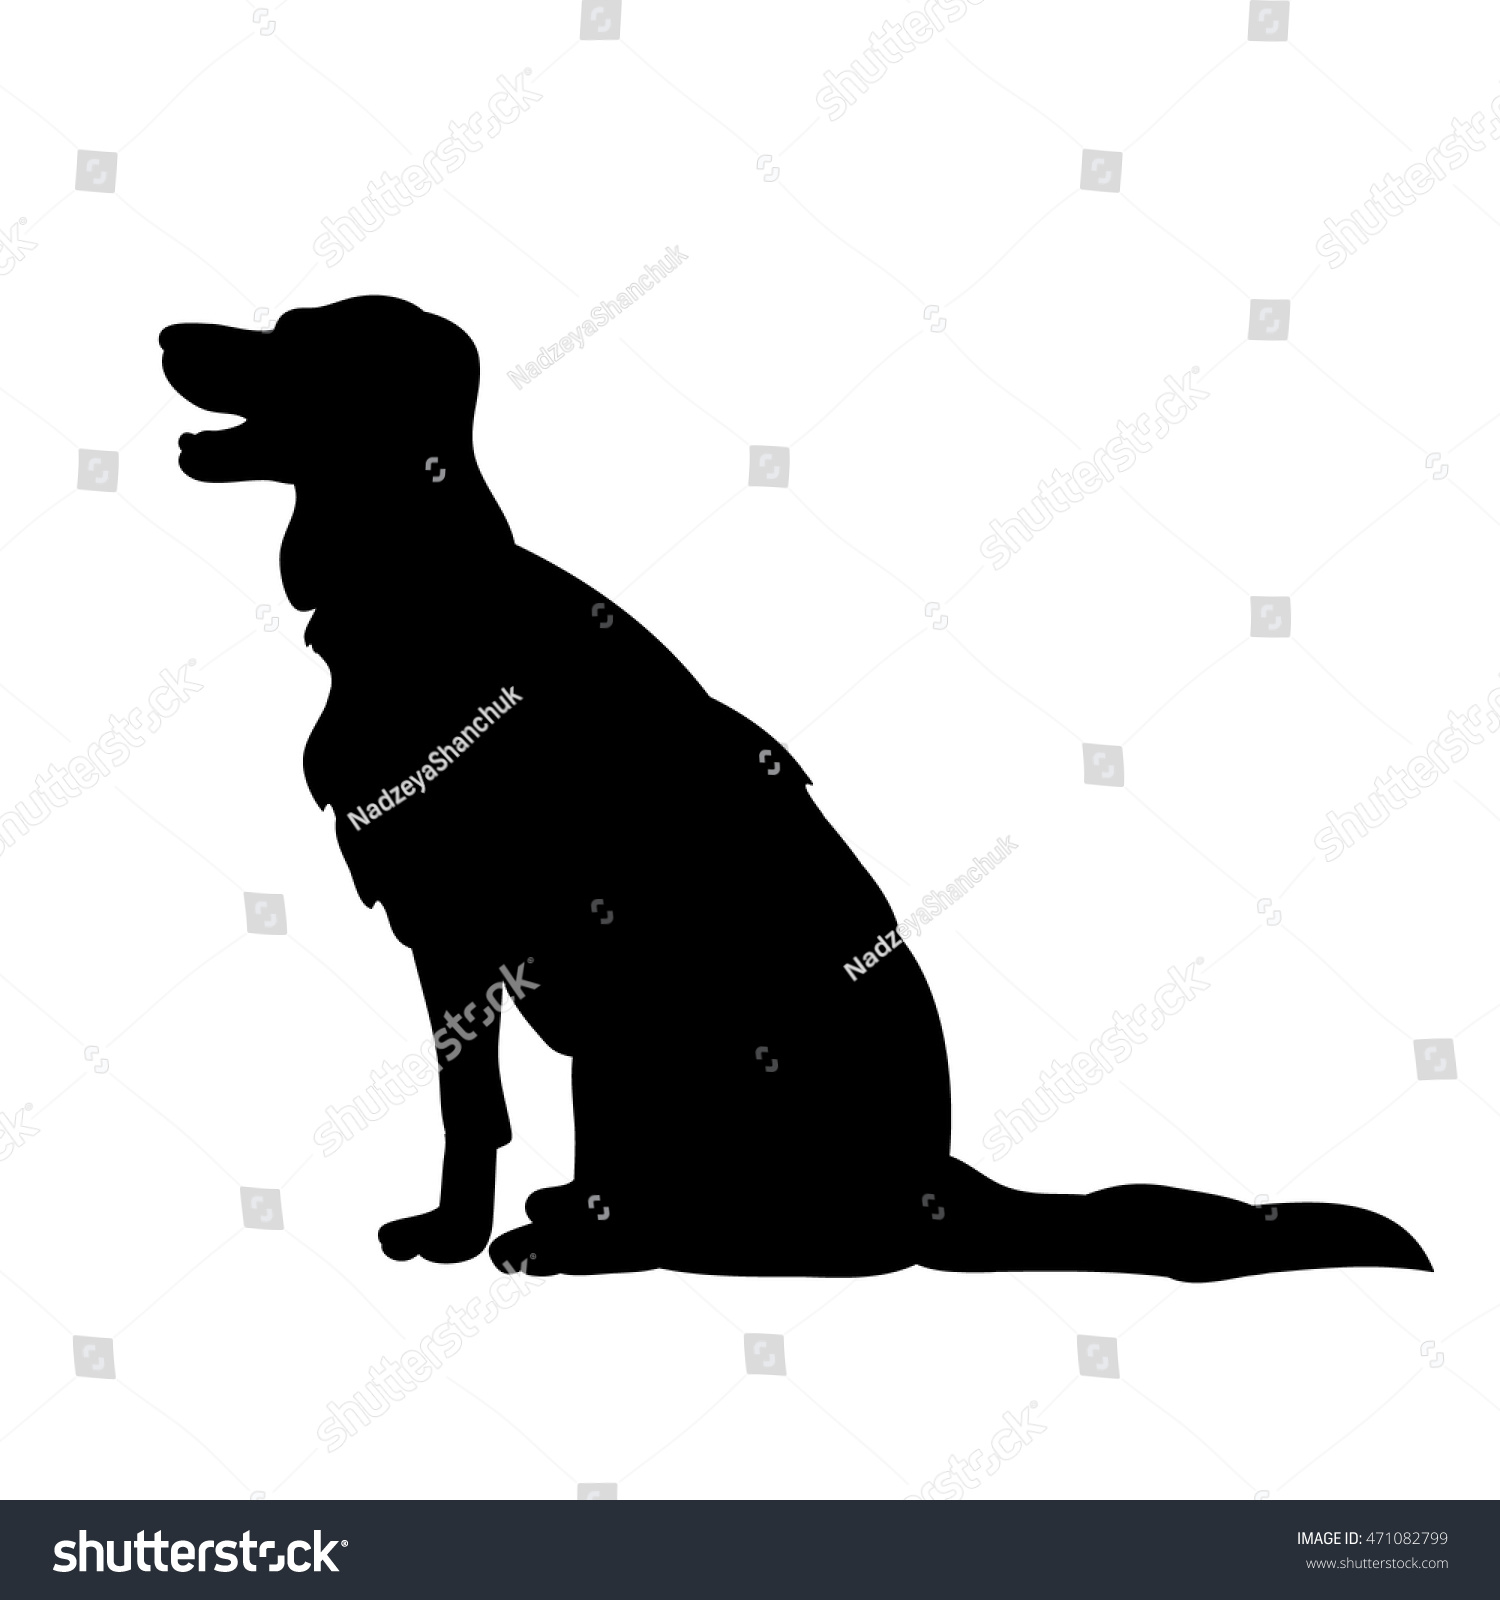 isolated on a white backgroundthe silhouette of a dog sitting